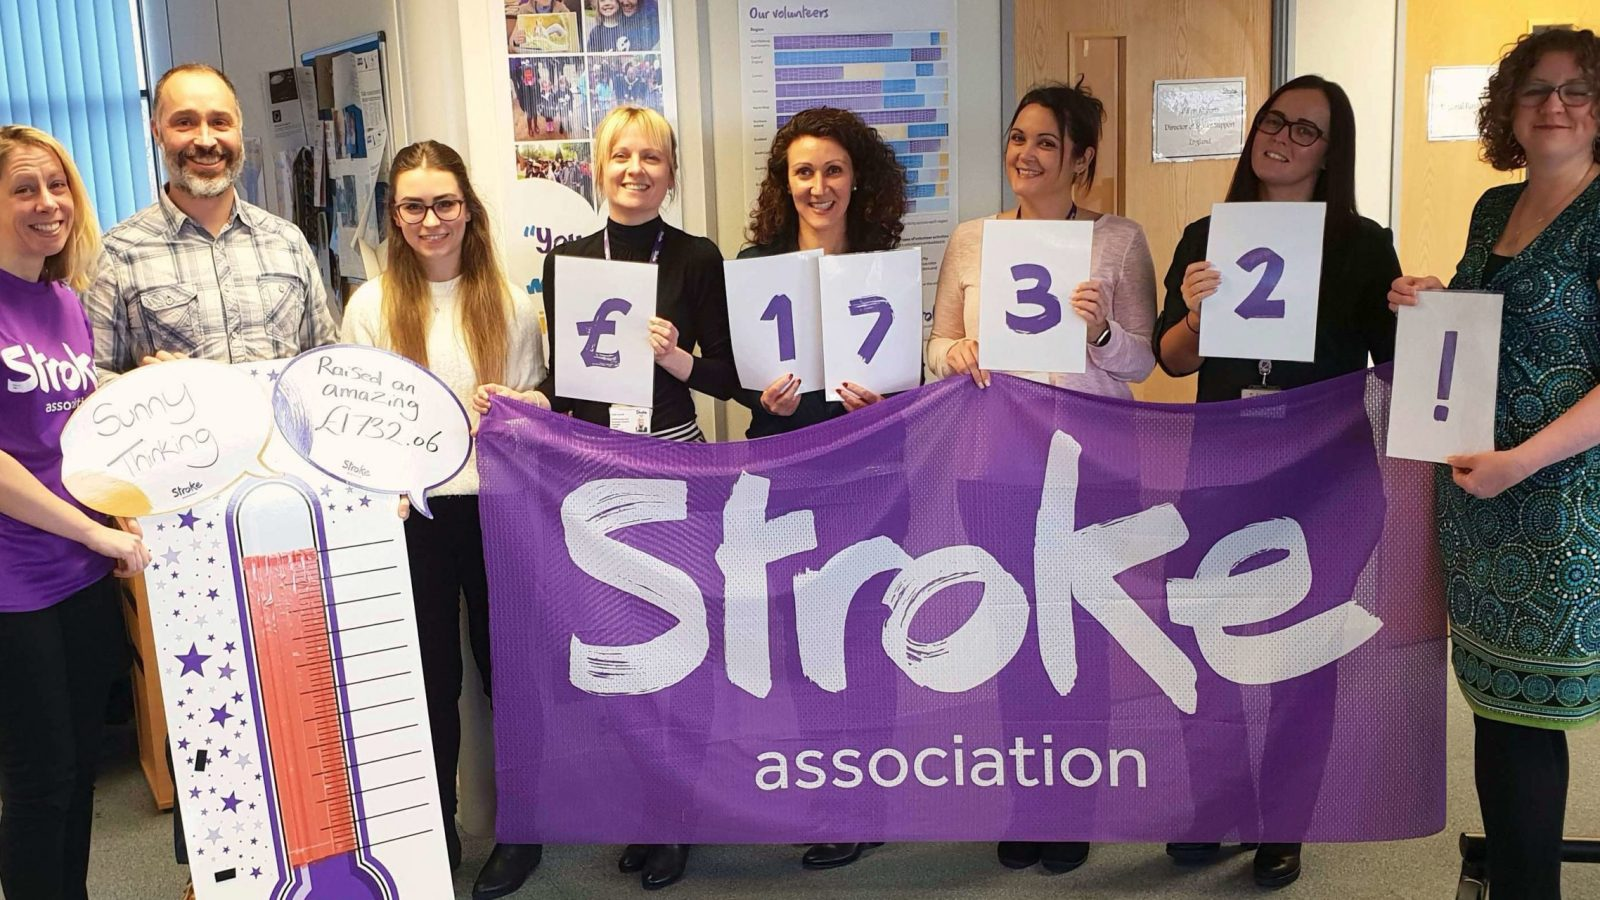 (from left) Siân Thomas from the Stroke Association with Sunny Thinking's Jonathan Reed, Danielle Knibb, Clare Carroll, Rebecca Murray, Rachael Cooper, Rebecca Owen and Helen Gilbertson